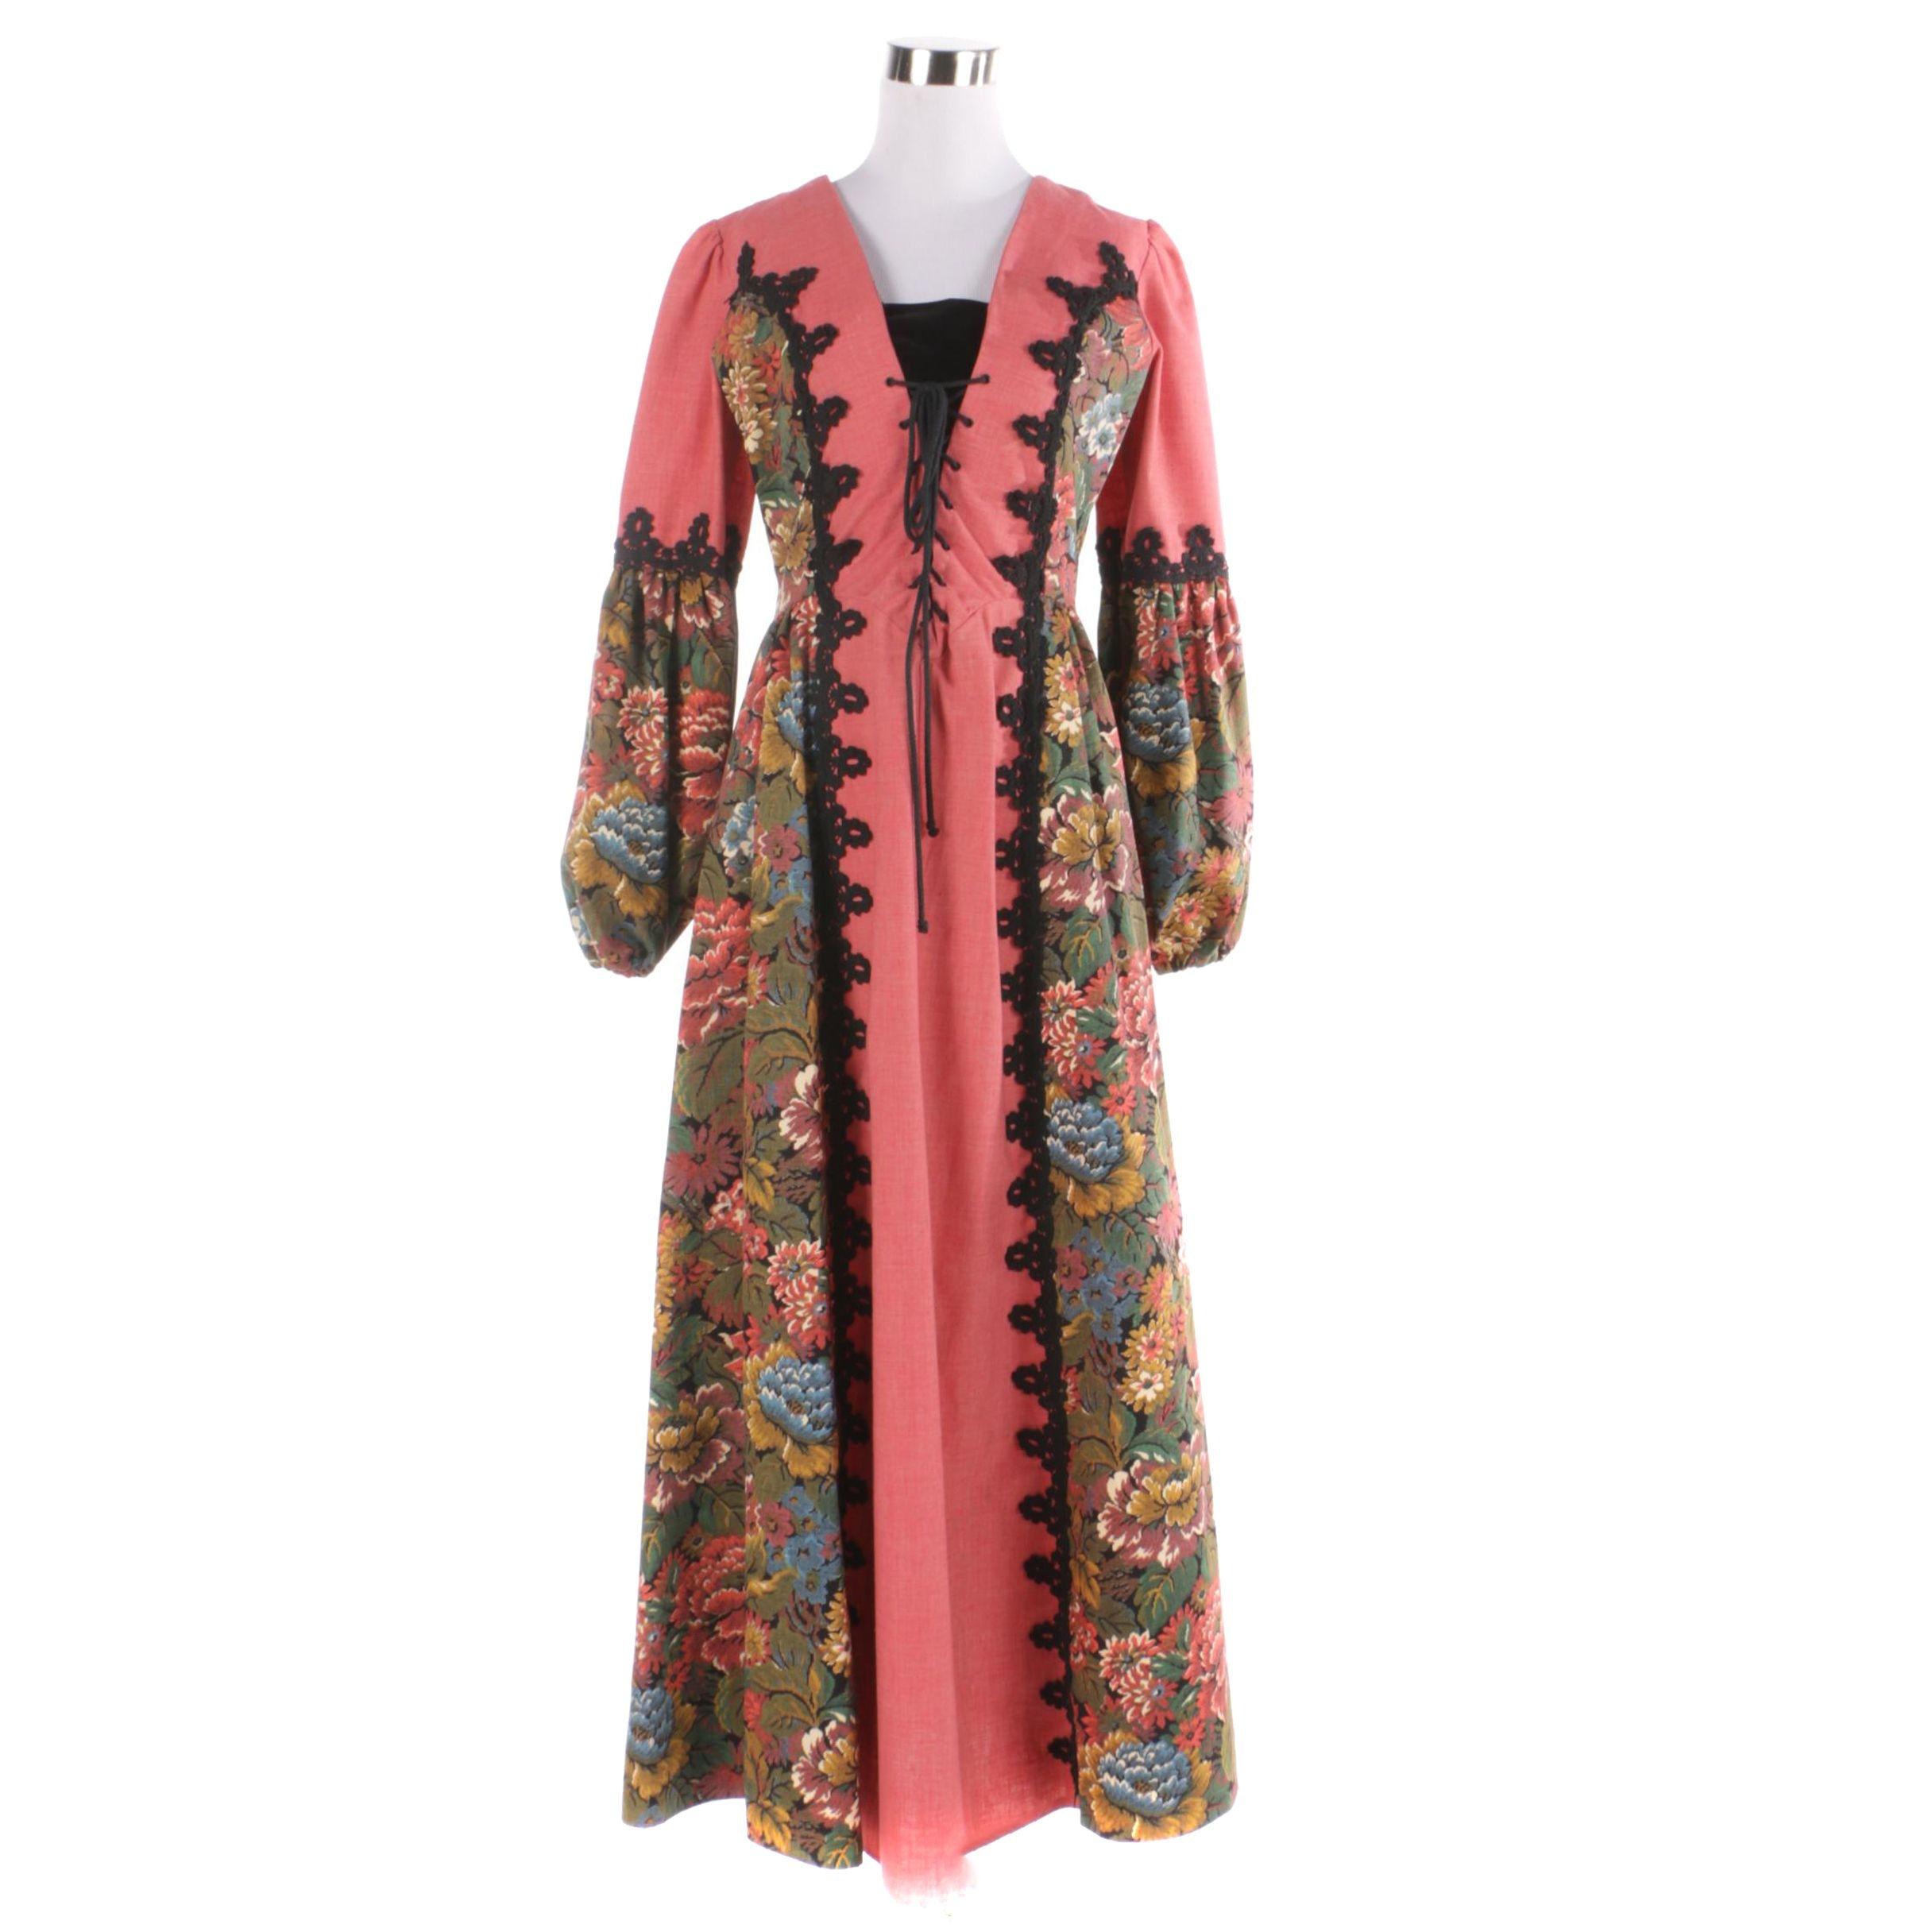 Circa 1969 Gunne Sax Renaissance-Inspired Tapestry Dress